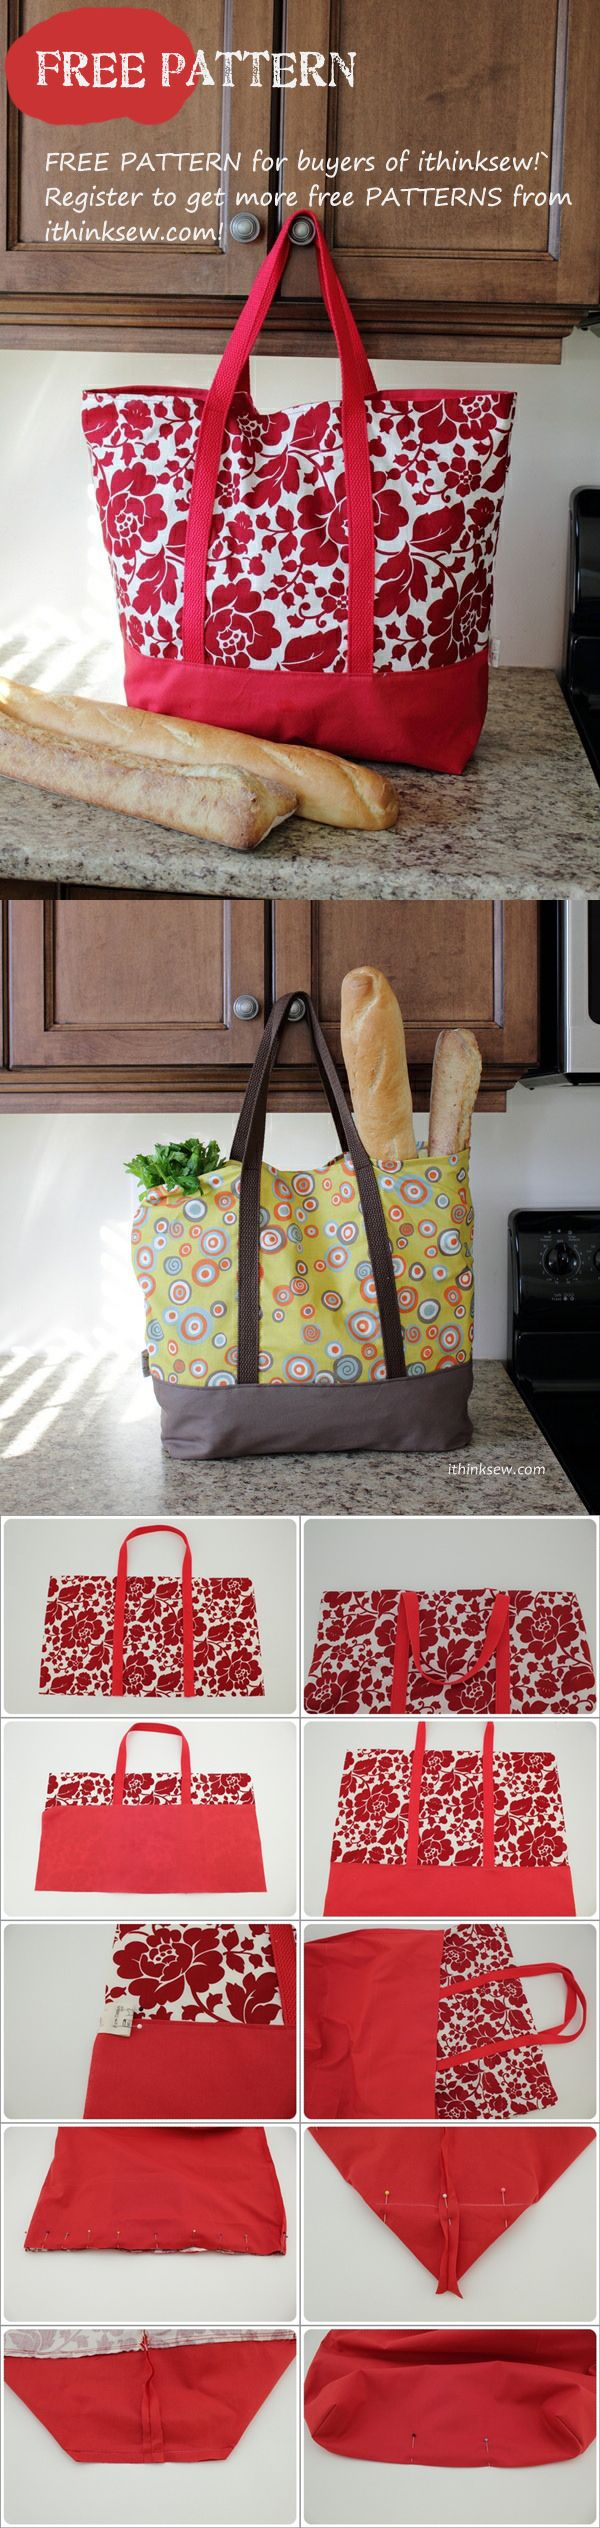 Free Patterns for buyers - Martha Market Bag